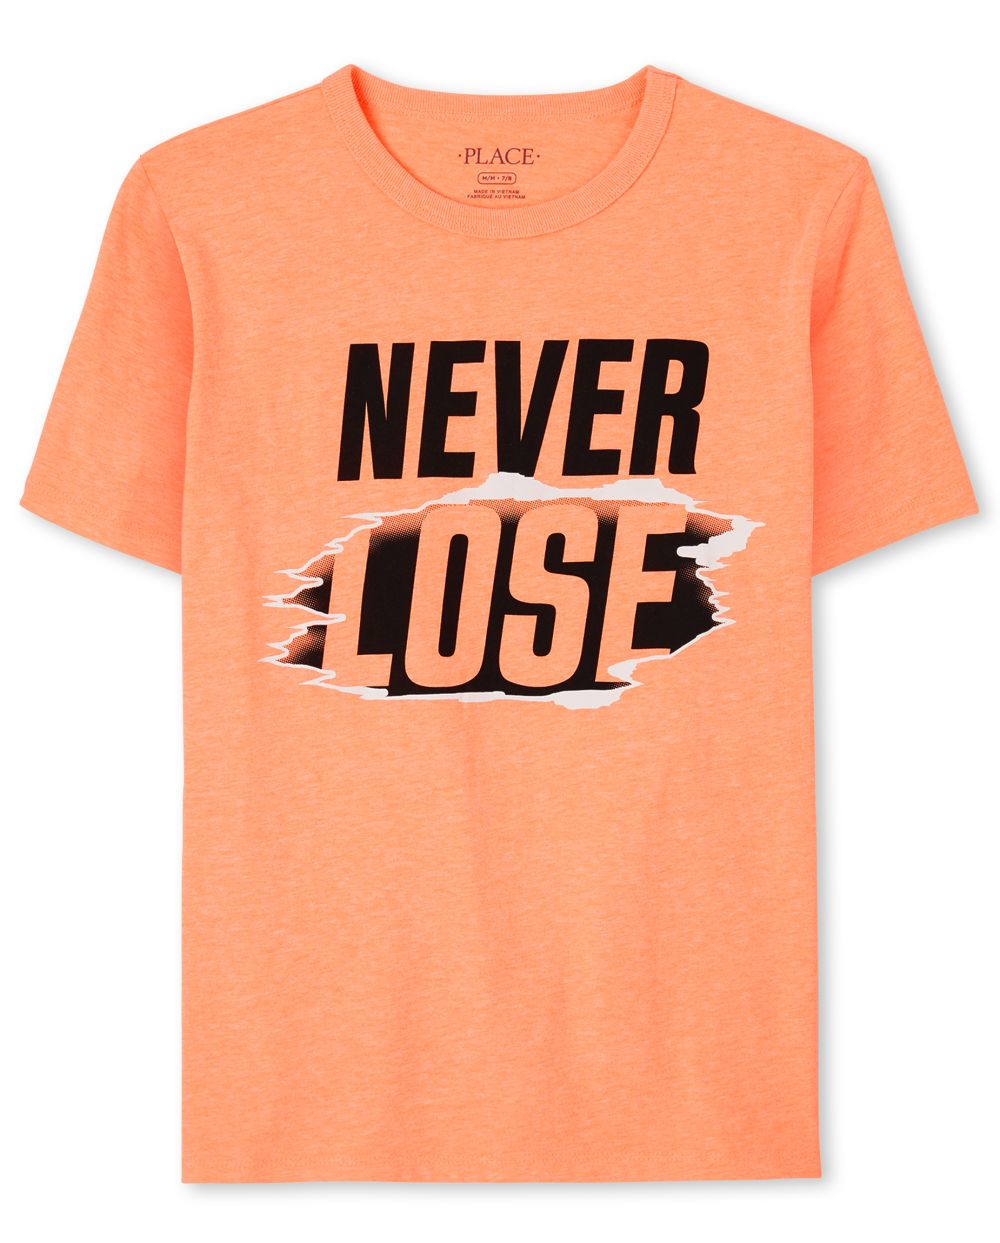 Boys Never Lose Graphic Tee